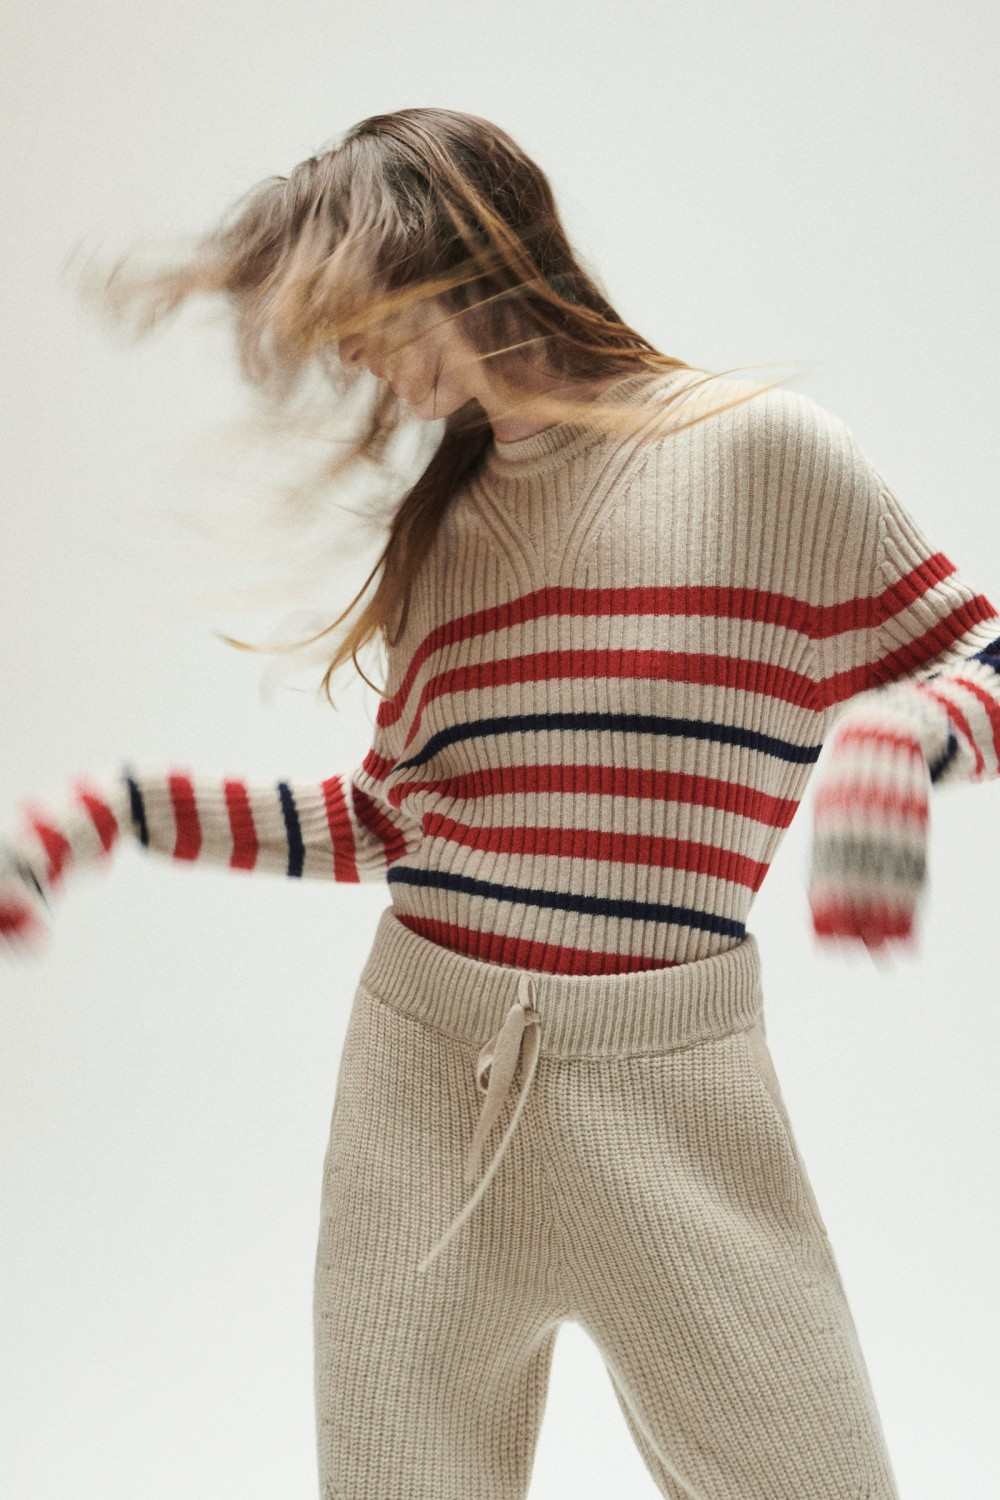 Paradis Perdus Launches With 100 Recycled Cashmere SweatersAnd a New Vision of Sustainability